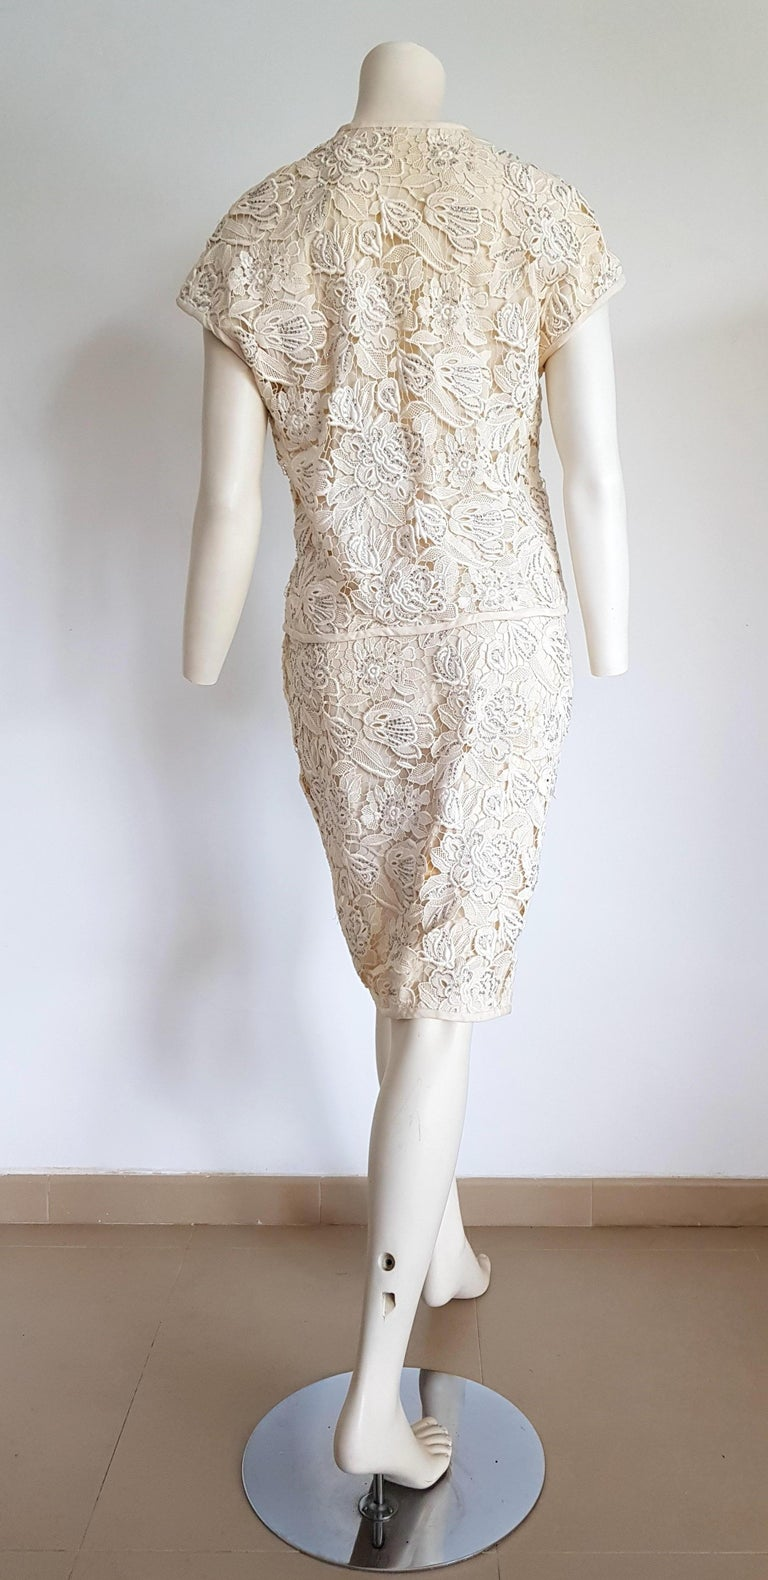 VALENTINO Haute Couture Swarovski Diamonds Embroidered Lace Beige Suit - Unworn For Sale 2